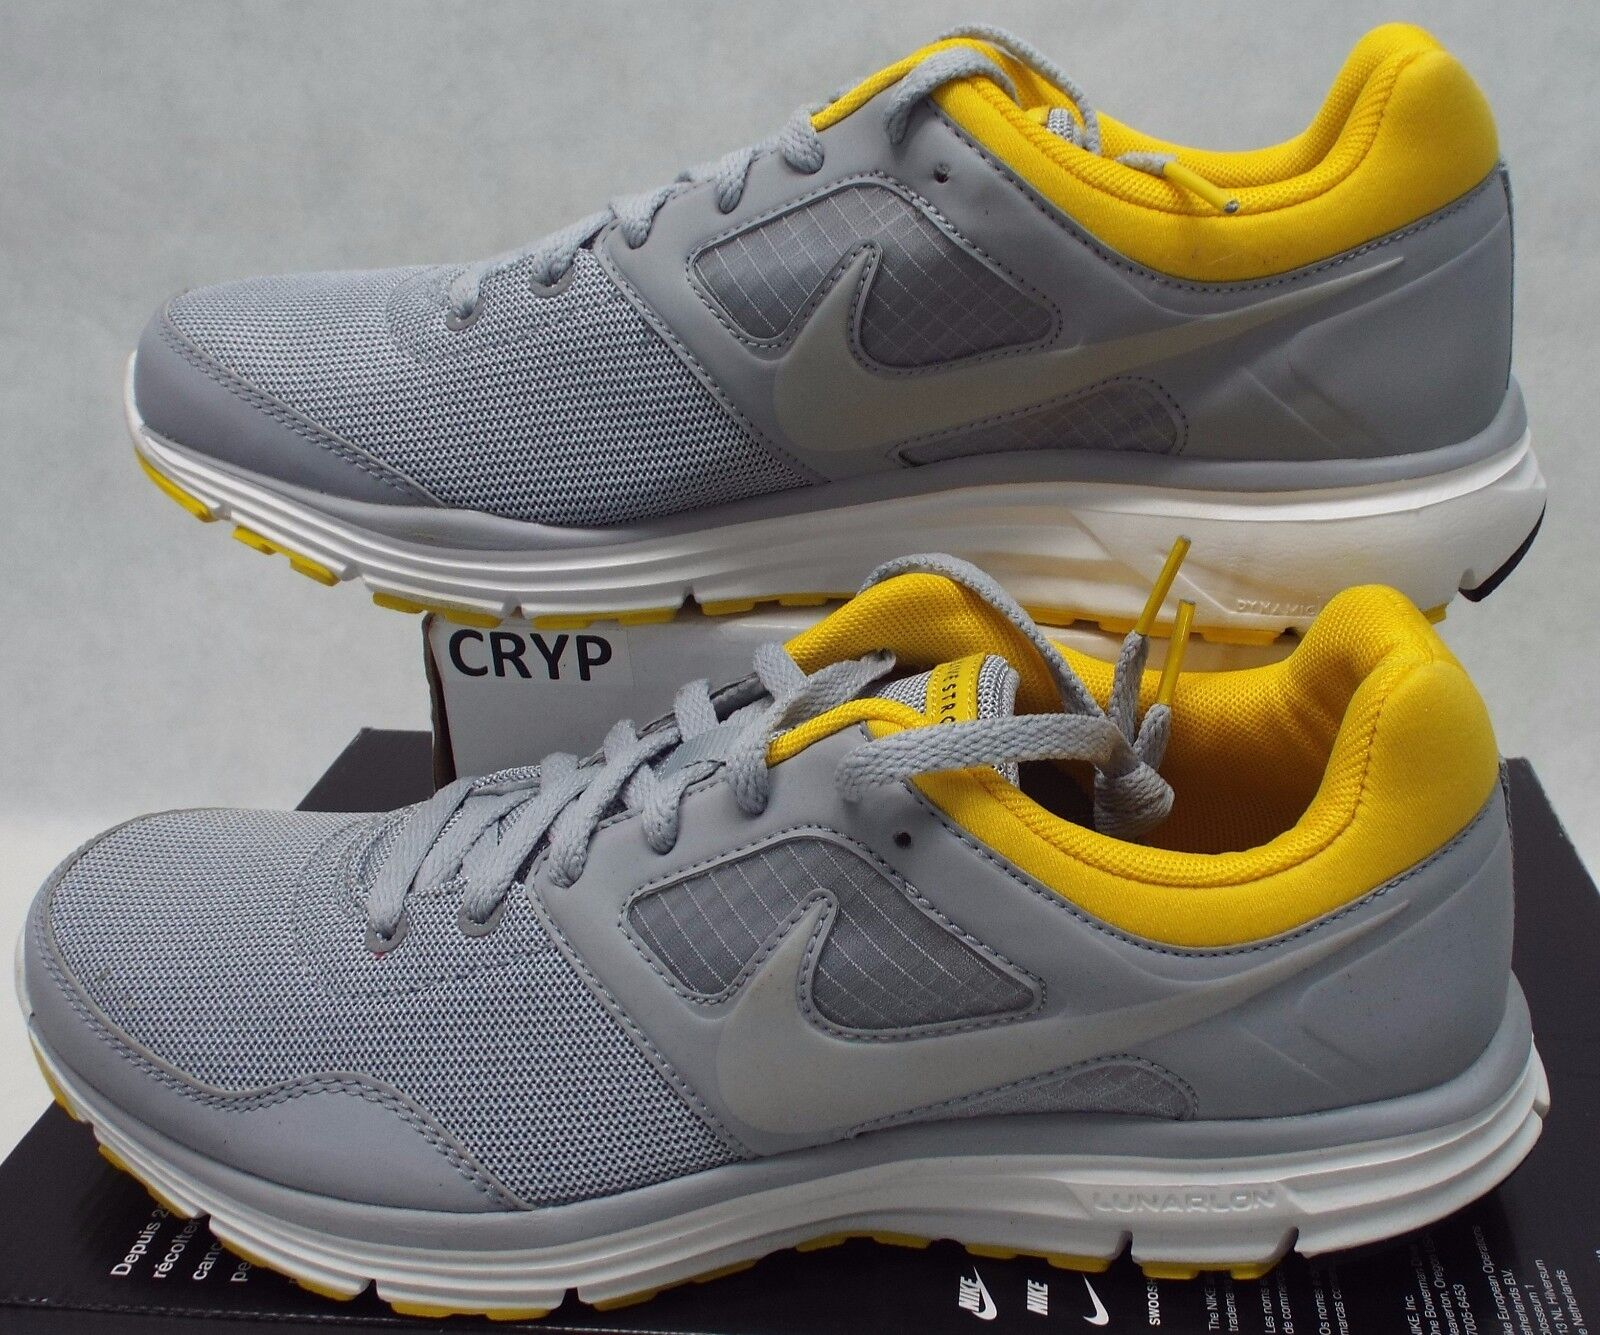 New New New Womens 10.5 NIKE LunarFly 4 LAF Grey Yellow shoes  90 554692-007 6948e3